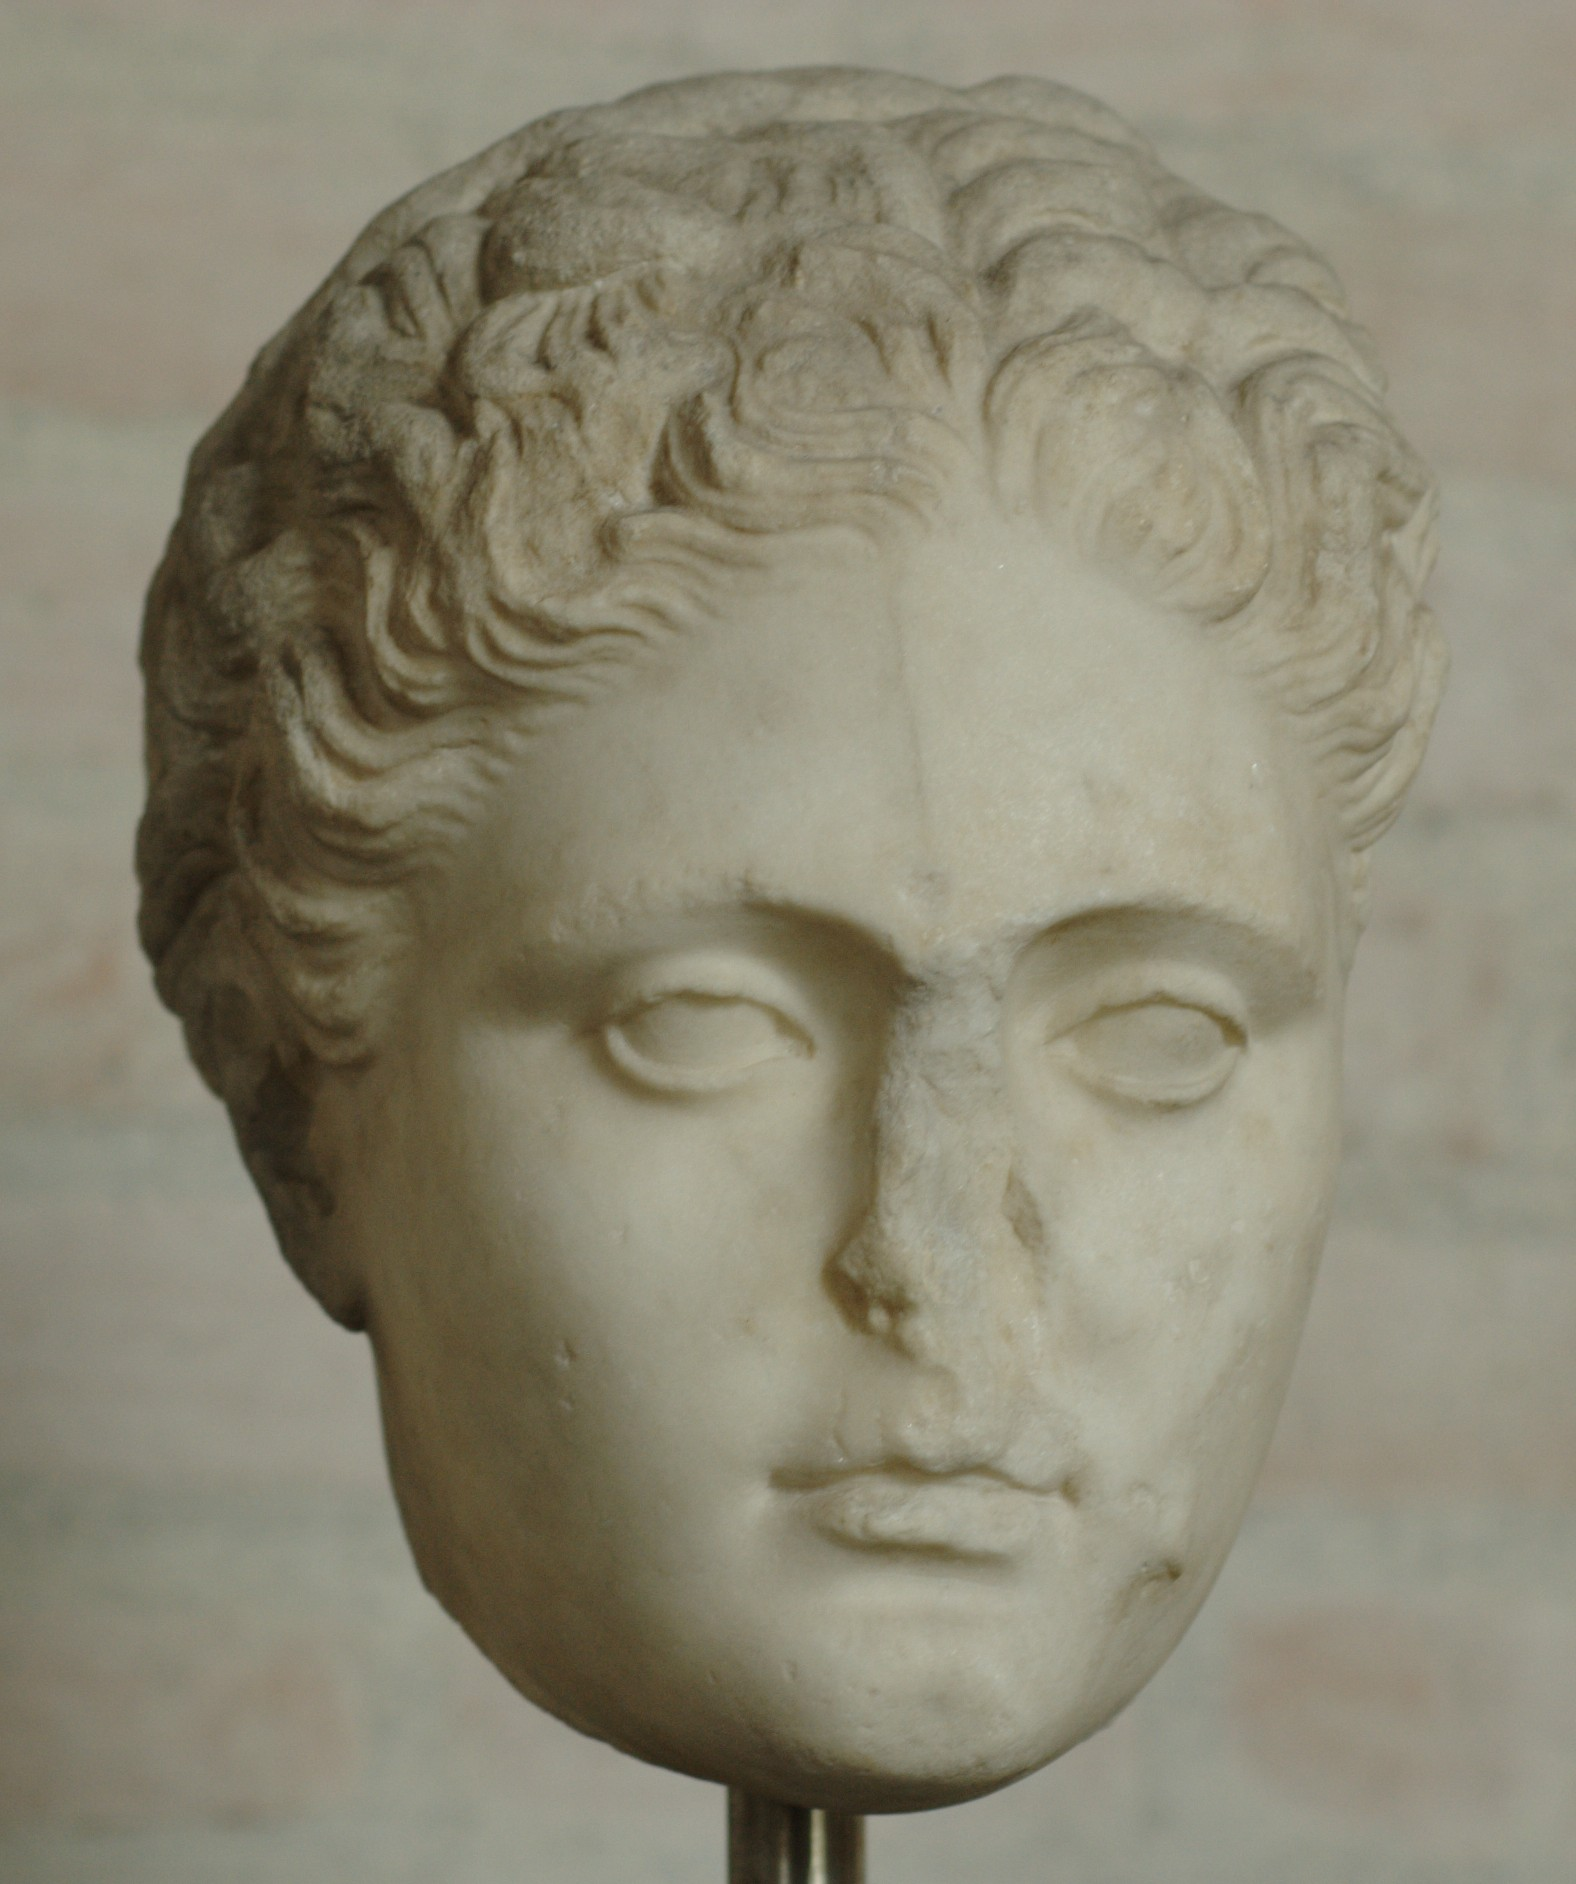 Head of a woman from the [[Glyptothek